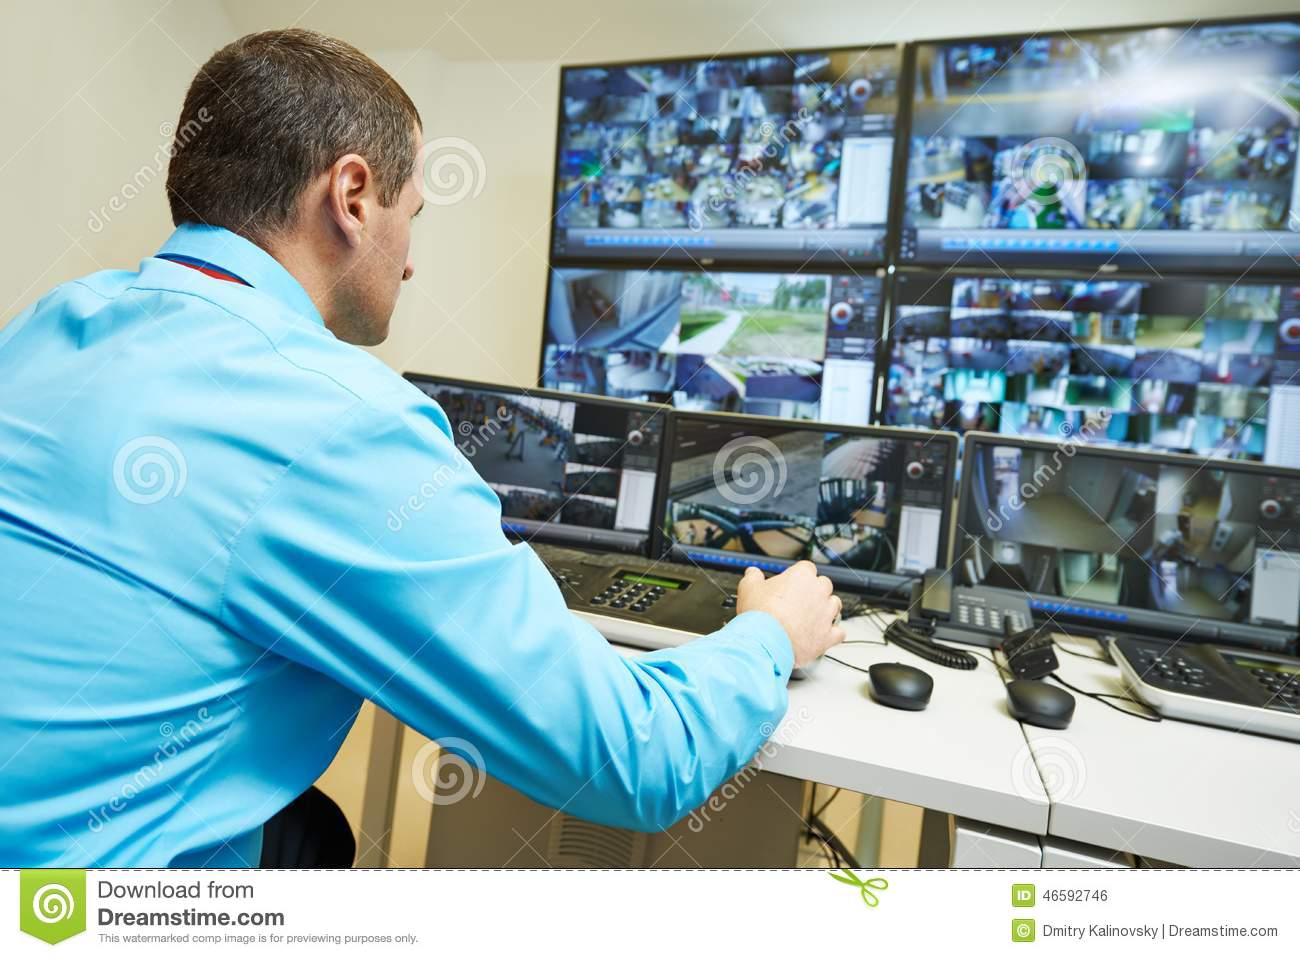 Security Video Surveillance Stock Photo Image 46592746